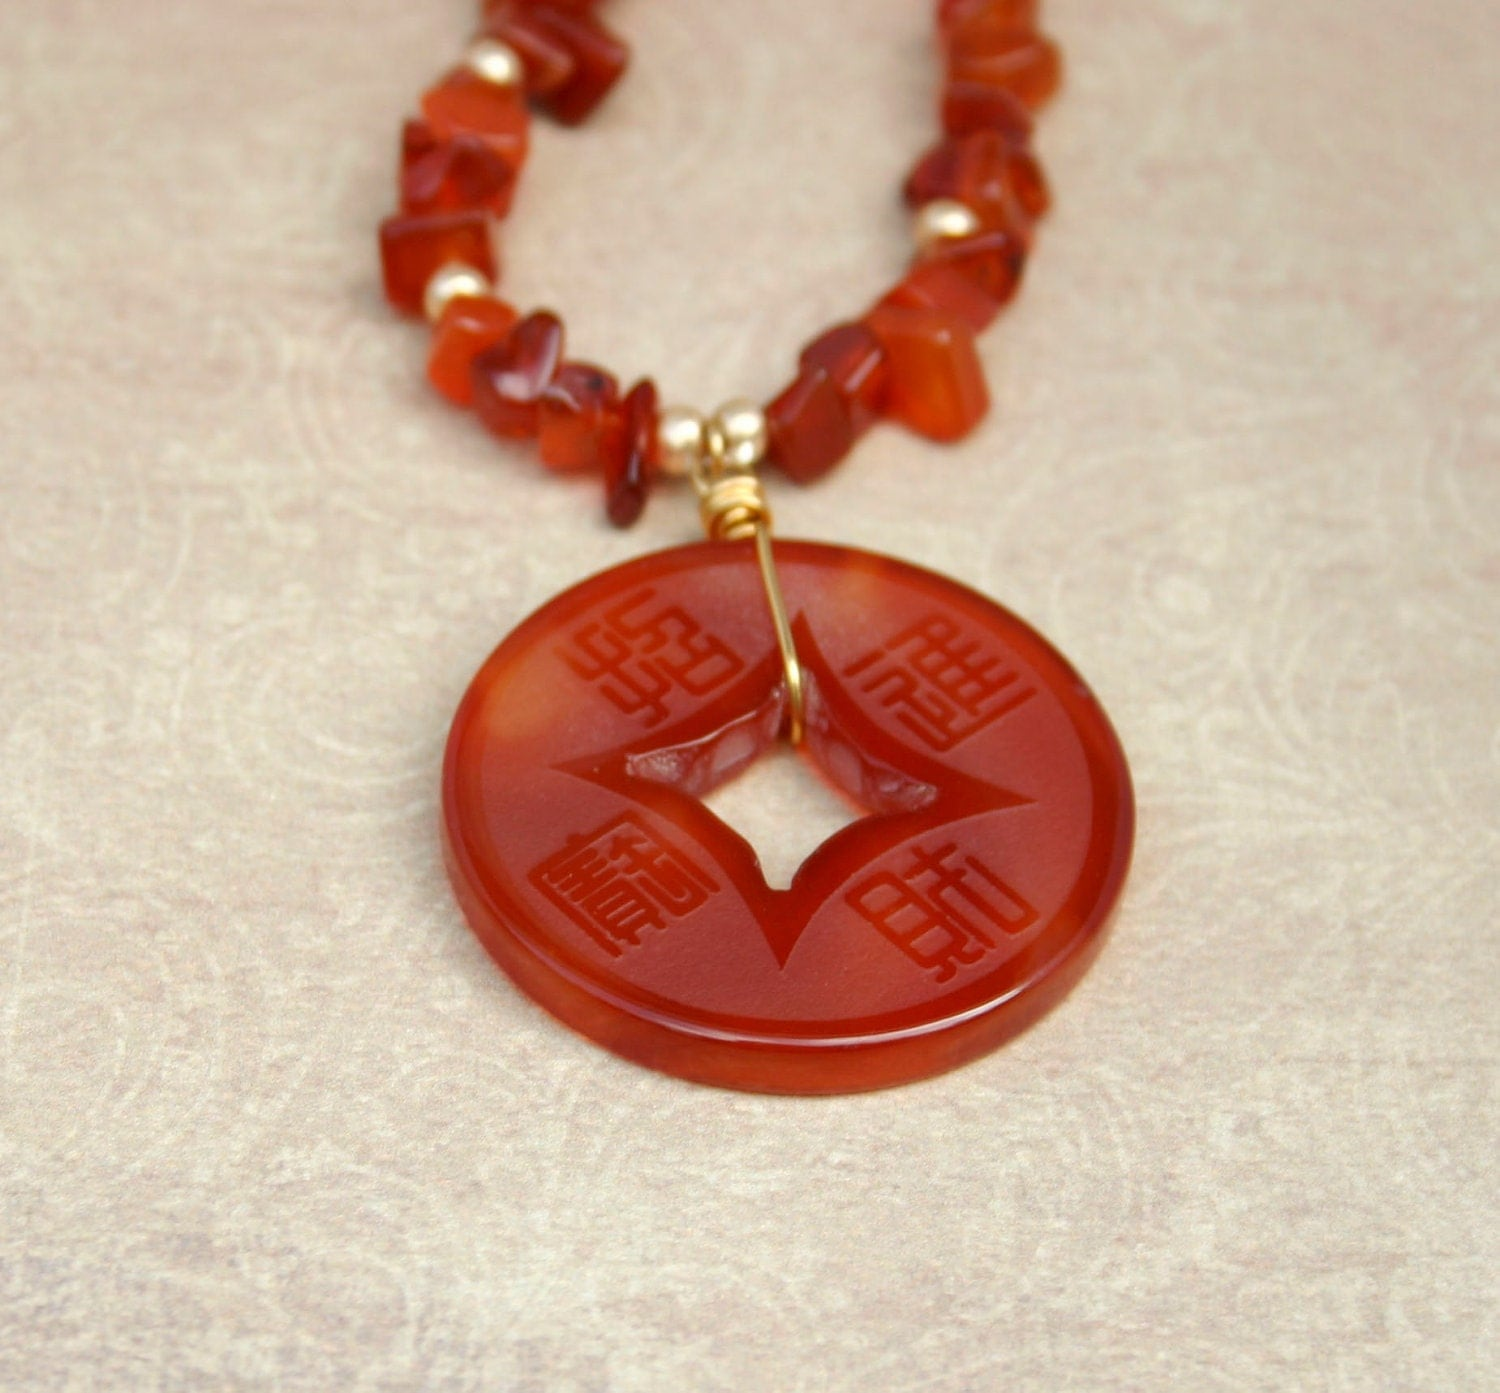 Carnelian necklace with Asian style carnelian coin pendant - Drakestail